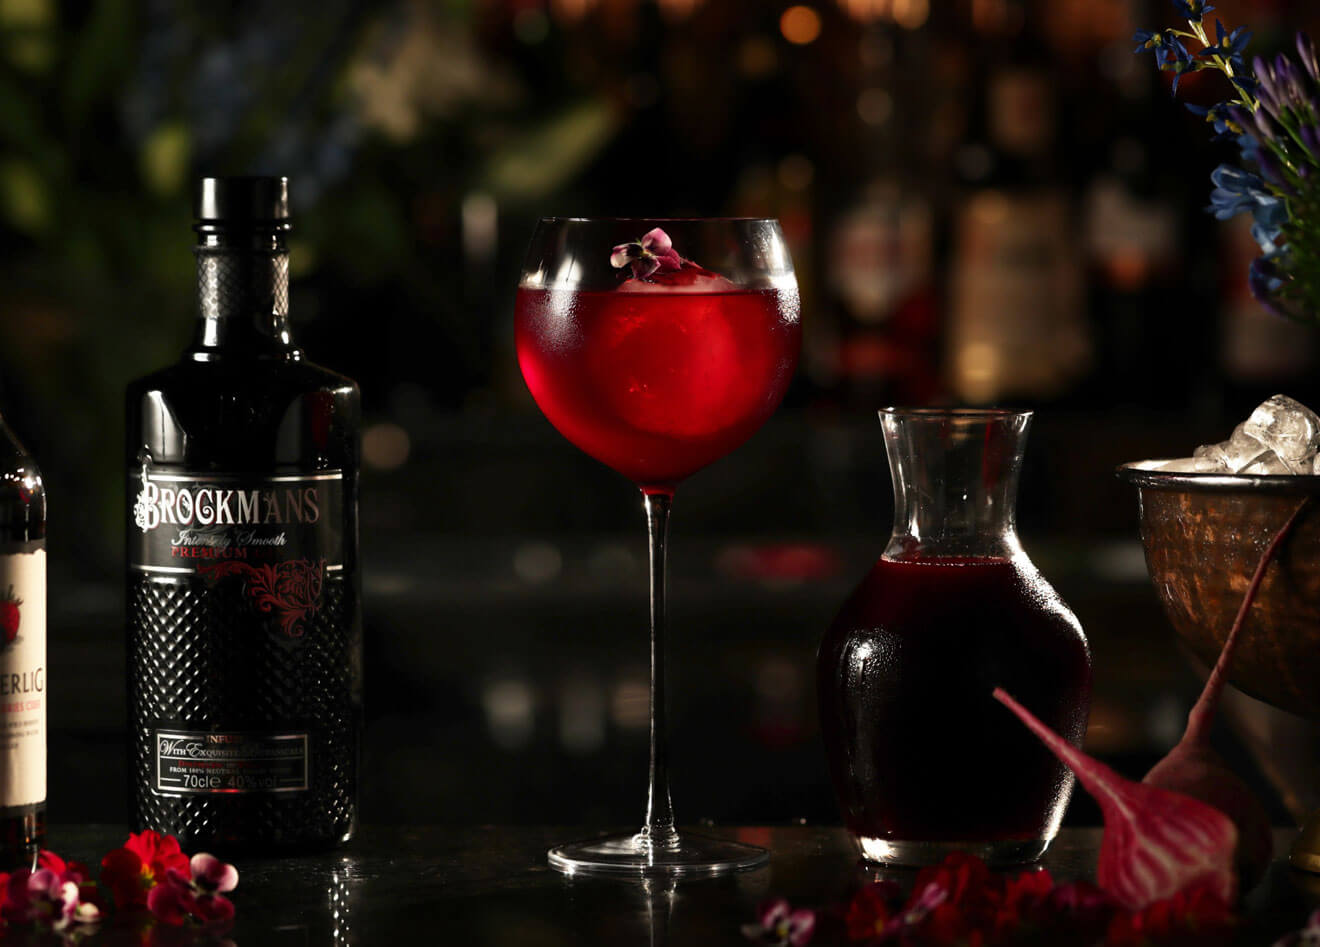 Purple Spring, cocktail with garnishes, dark background